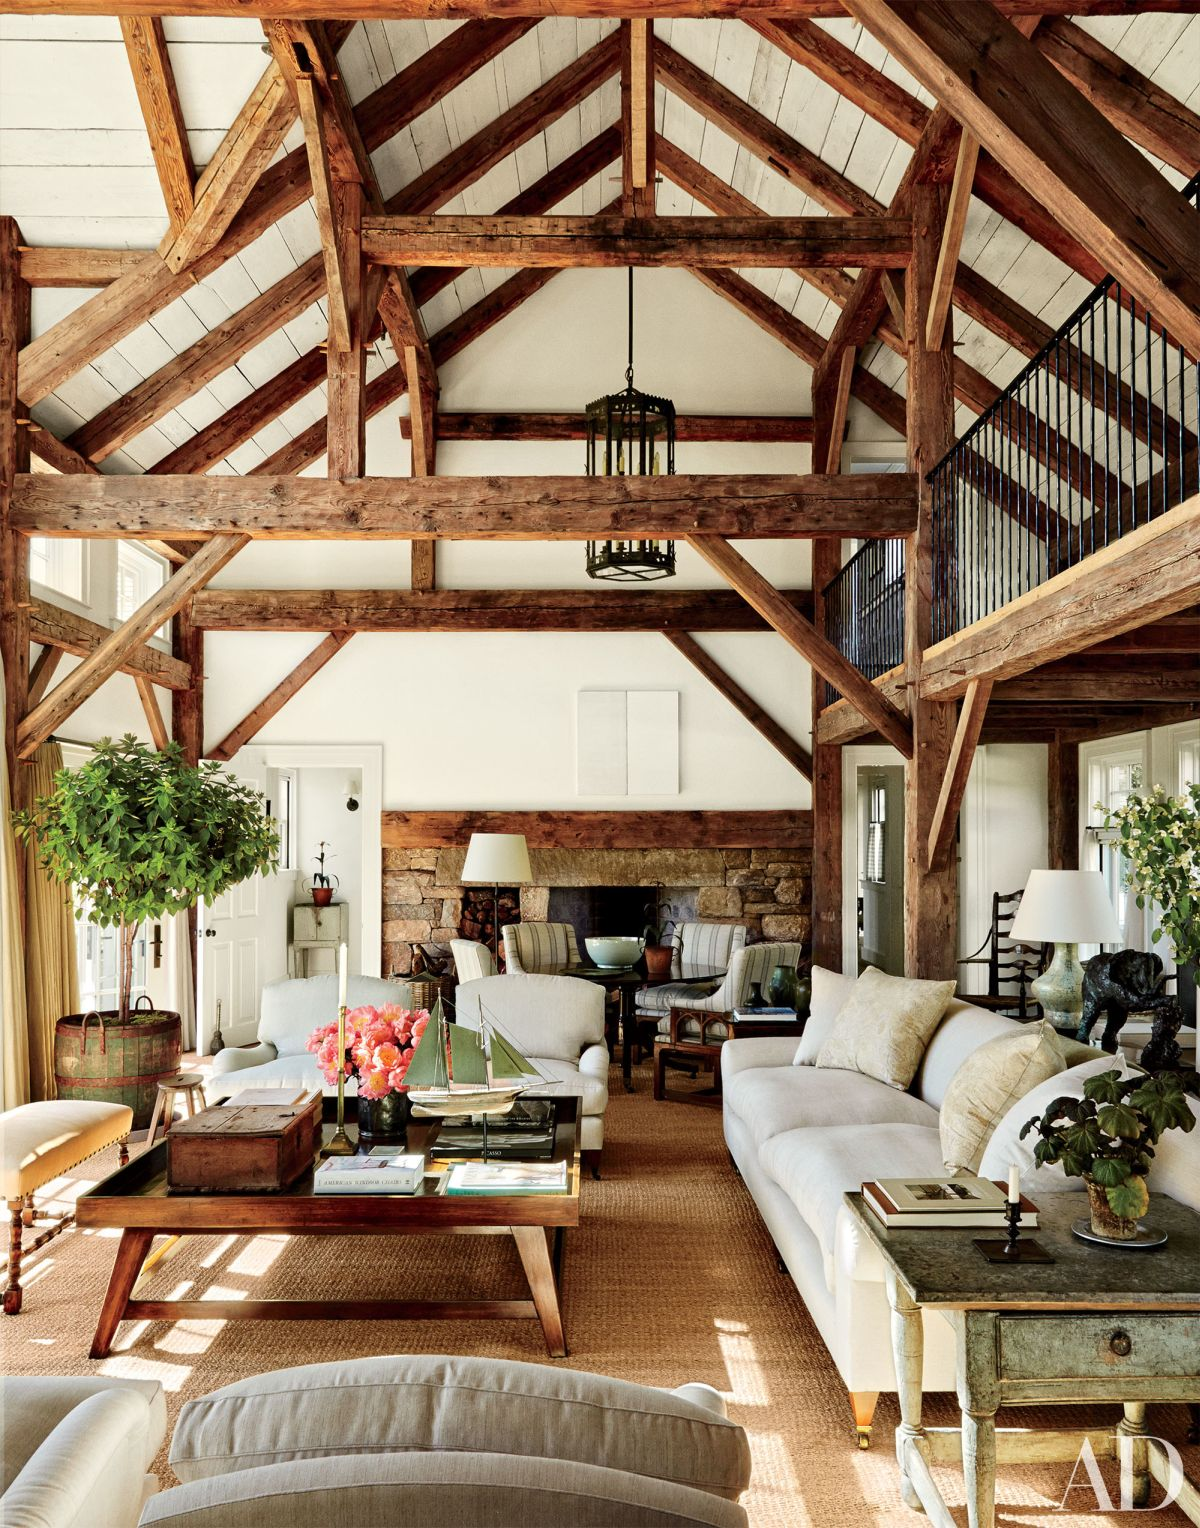 Expose your rusticity with exposed beams - Chic country house architecture with adorable interior design ...